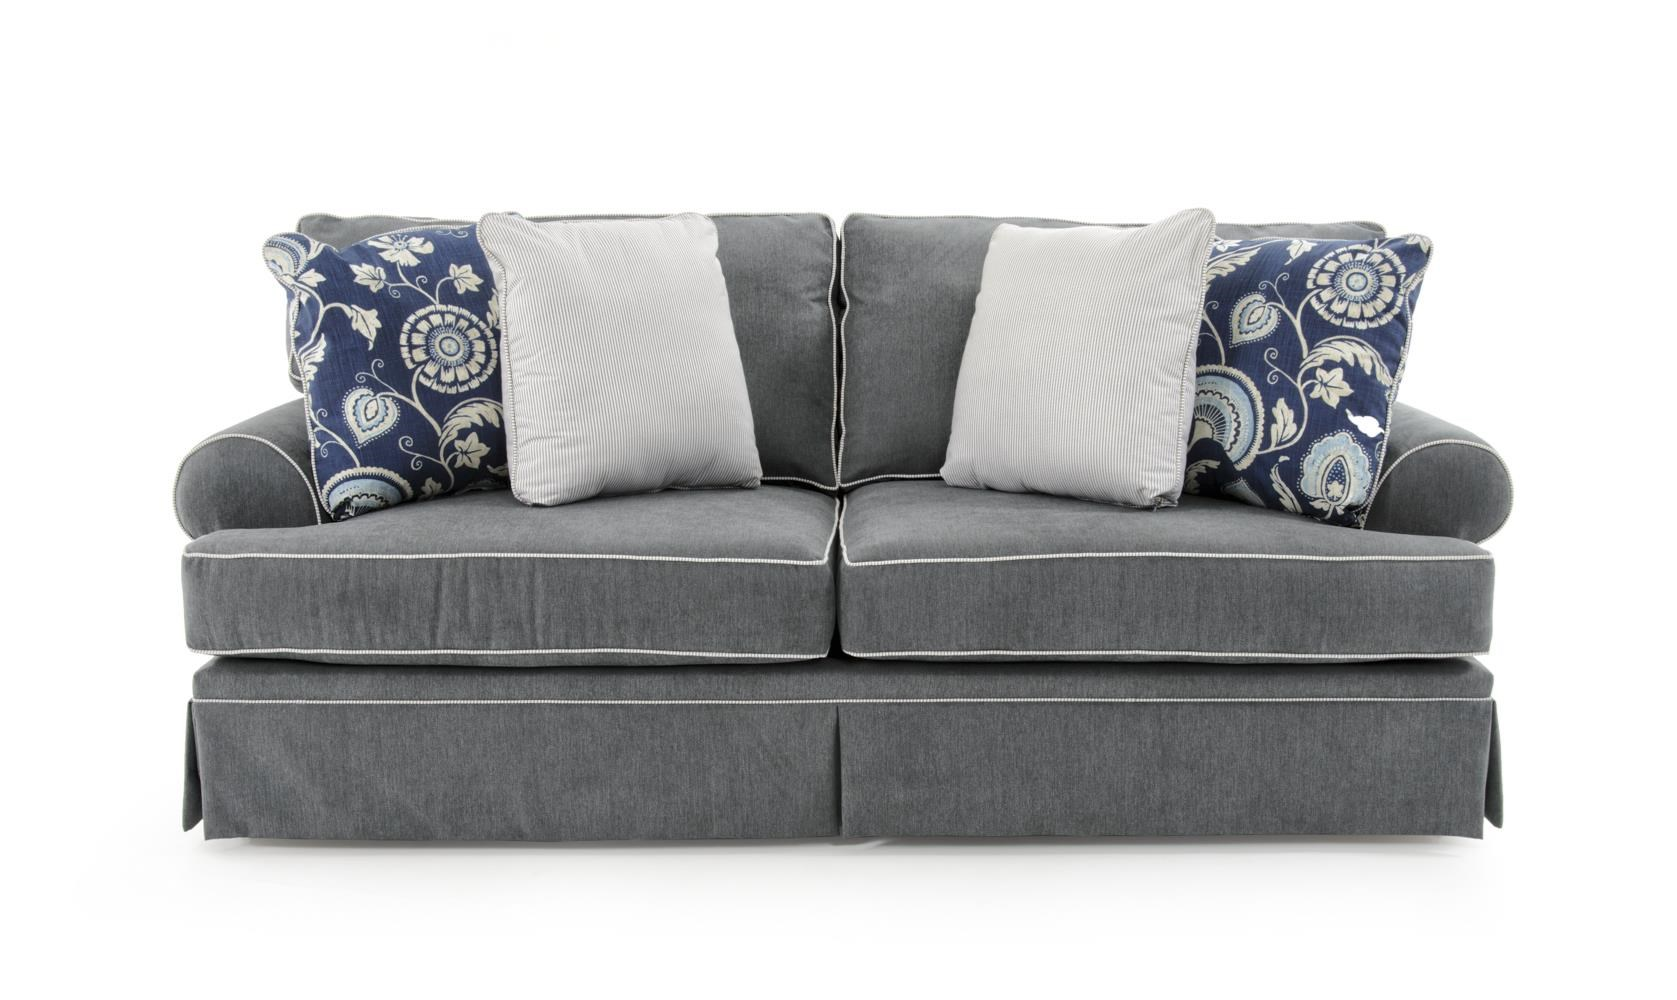 Broyhill Furniture Emily Queen Goodnight Sleeper Sofa Baers - Broyhill emily sofa